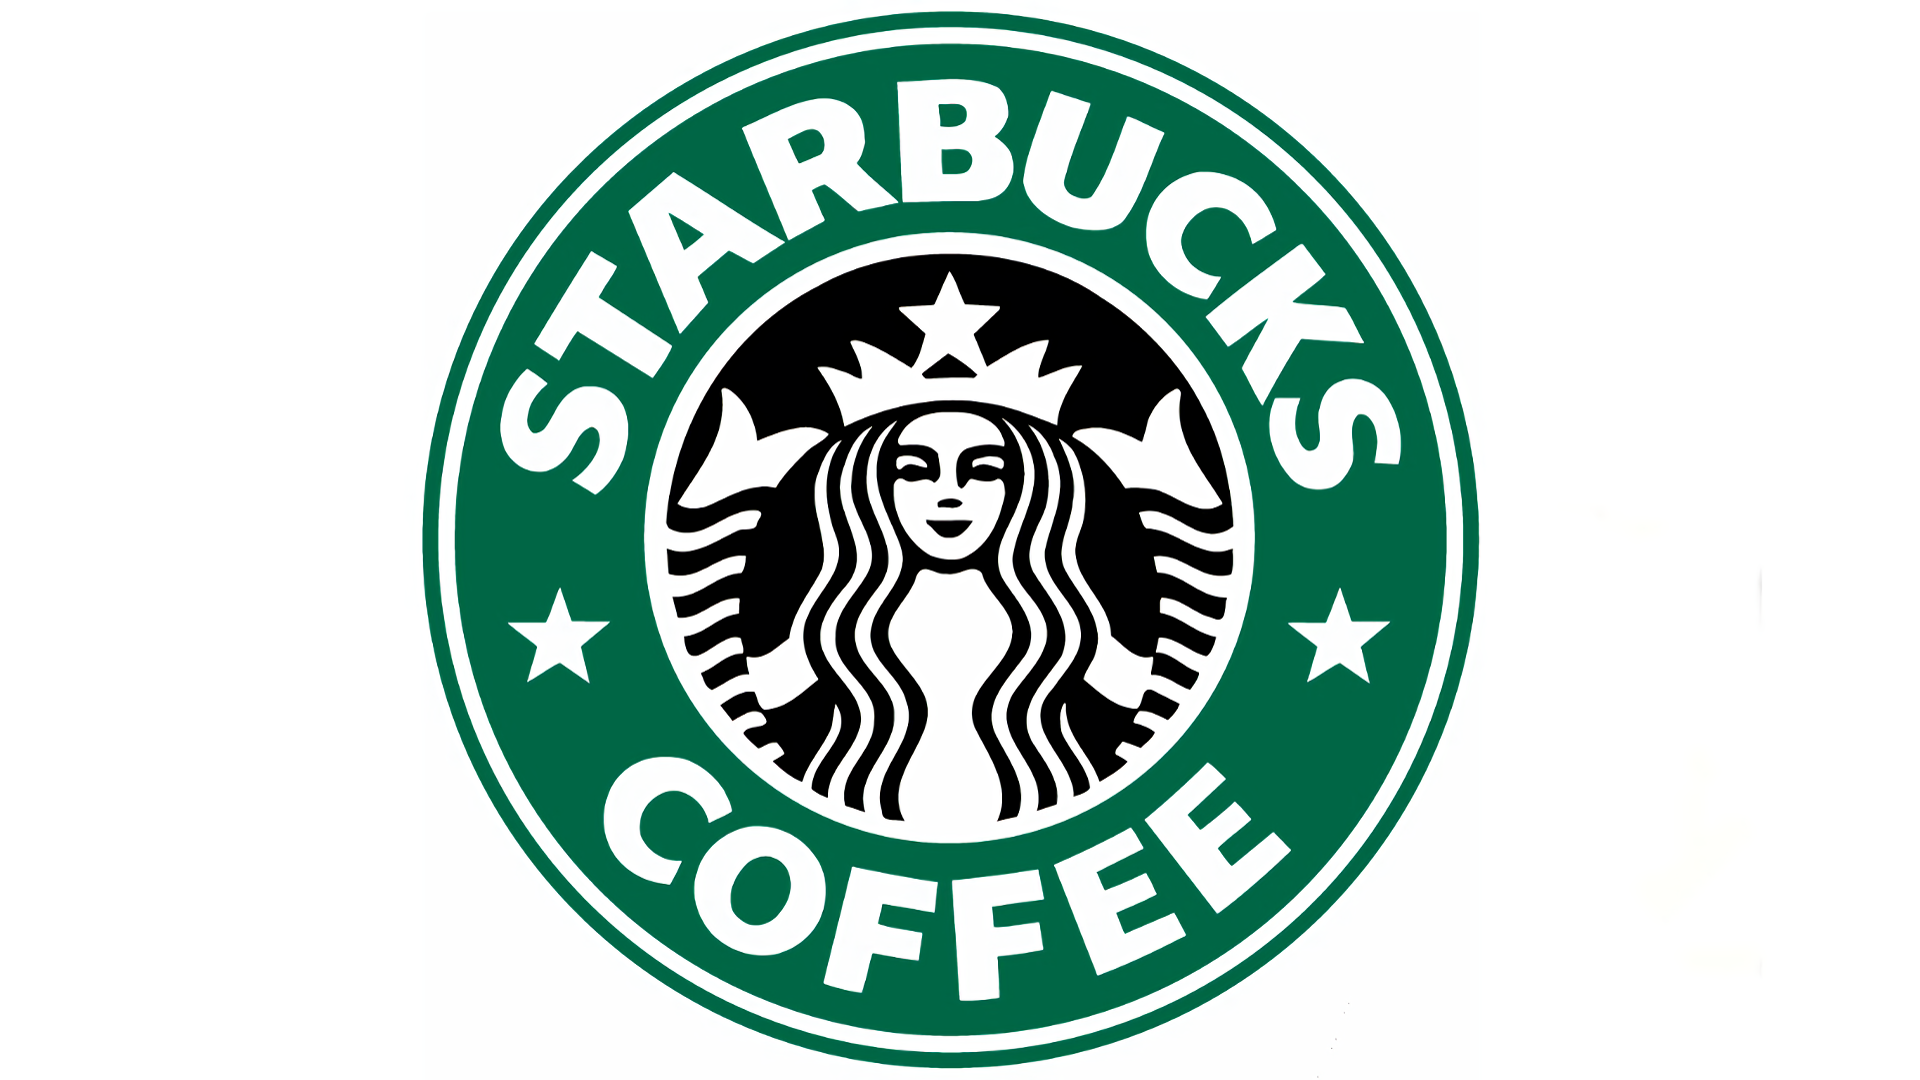 8 starbucks hd wallpapers background images wallpaper abyss hd wallpaper background image id406000 1920x1080 products starbucks voltagebd Gallery